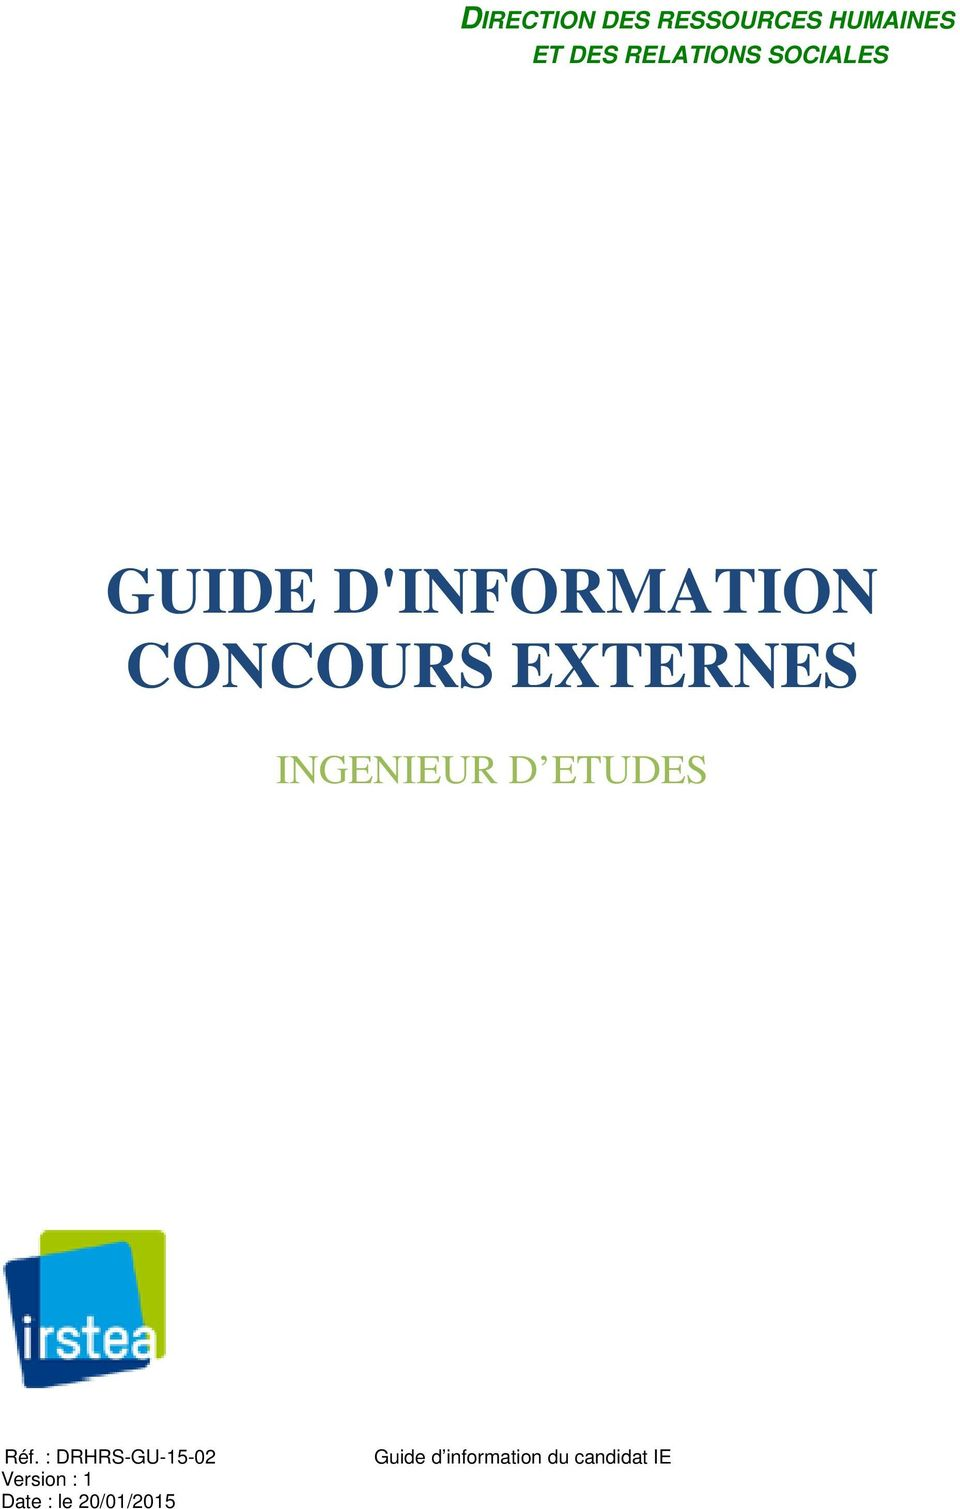 SOCIALES GUIDE D'INFORMATION